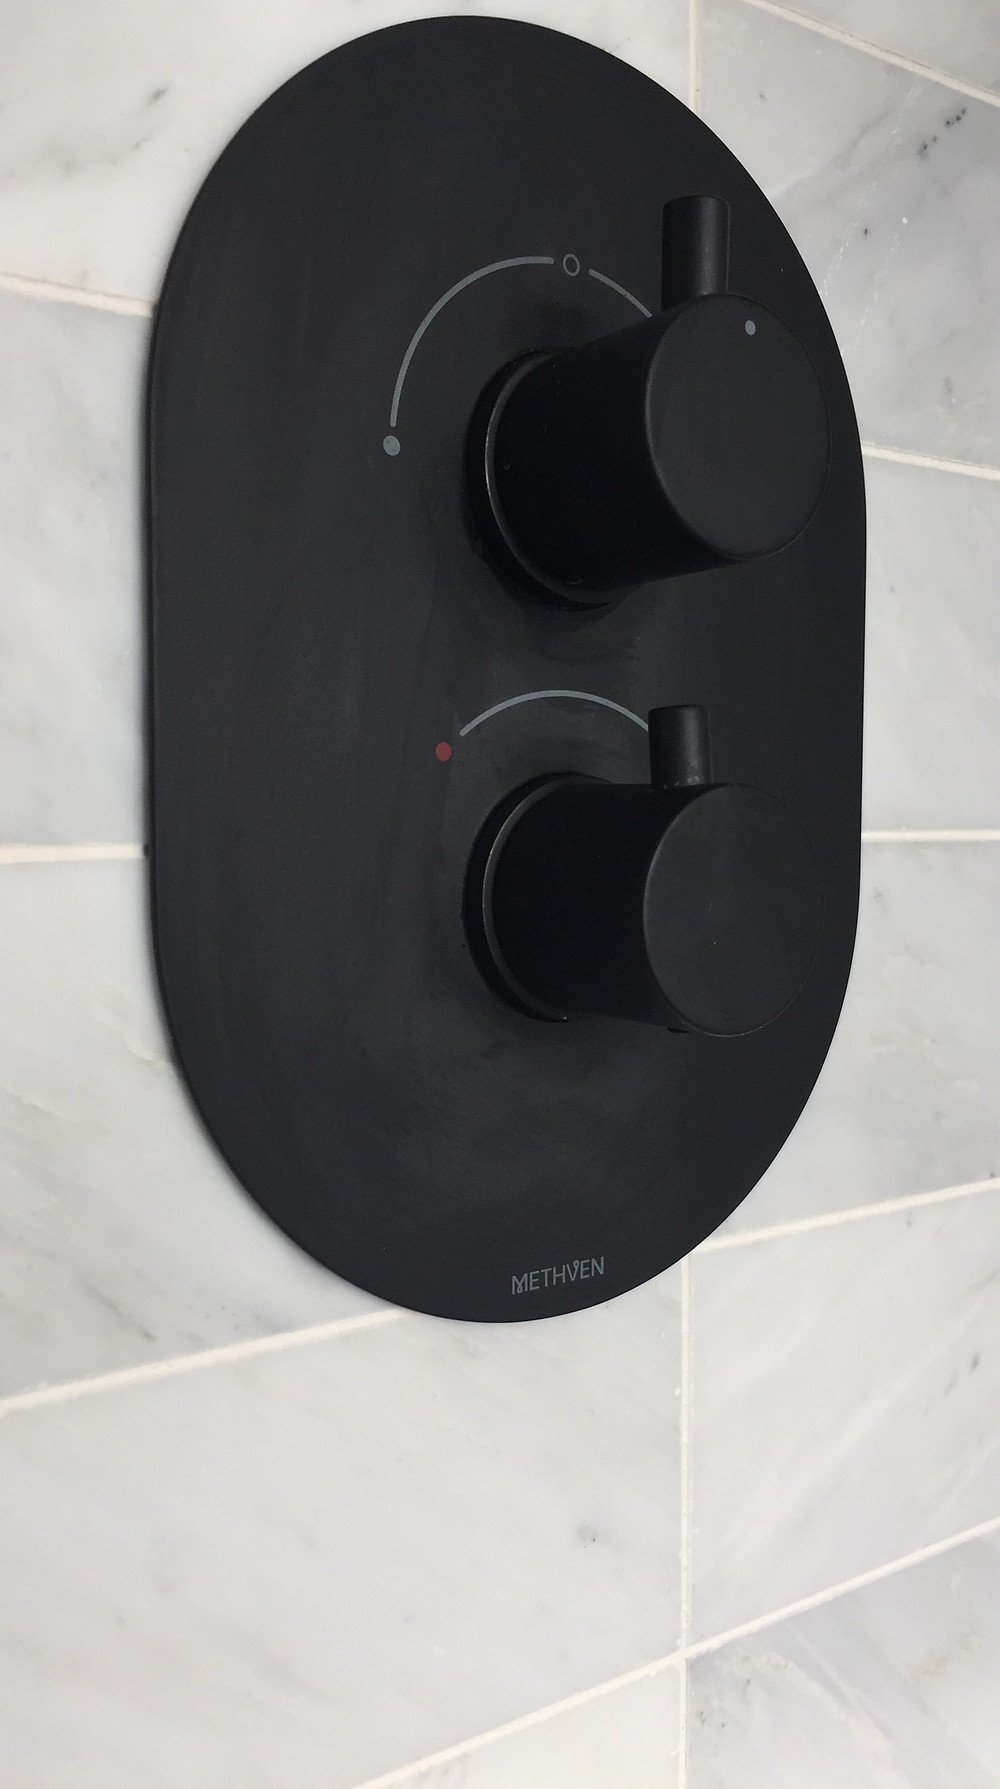 Methven KAHA Black shower 2 WAY mixer valve and marble hexagon tiles from Mandarin Stone